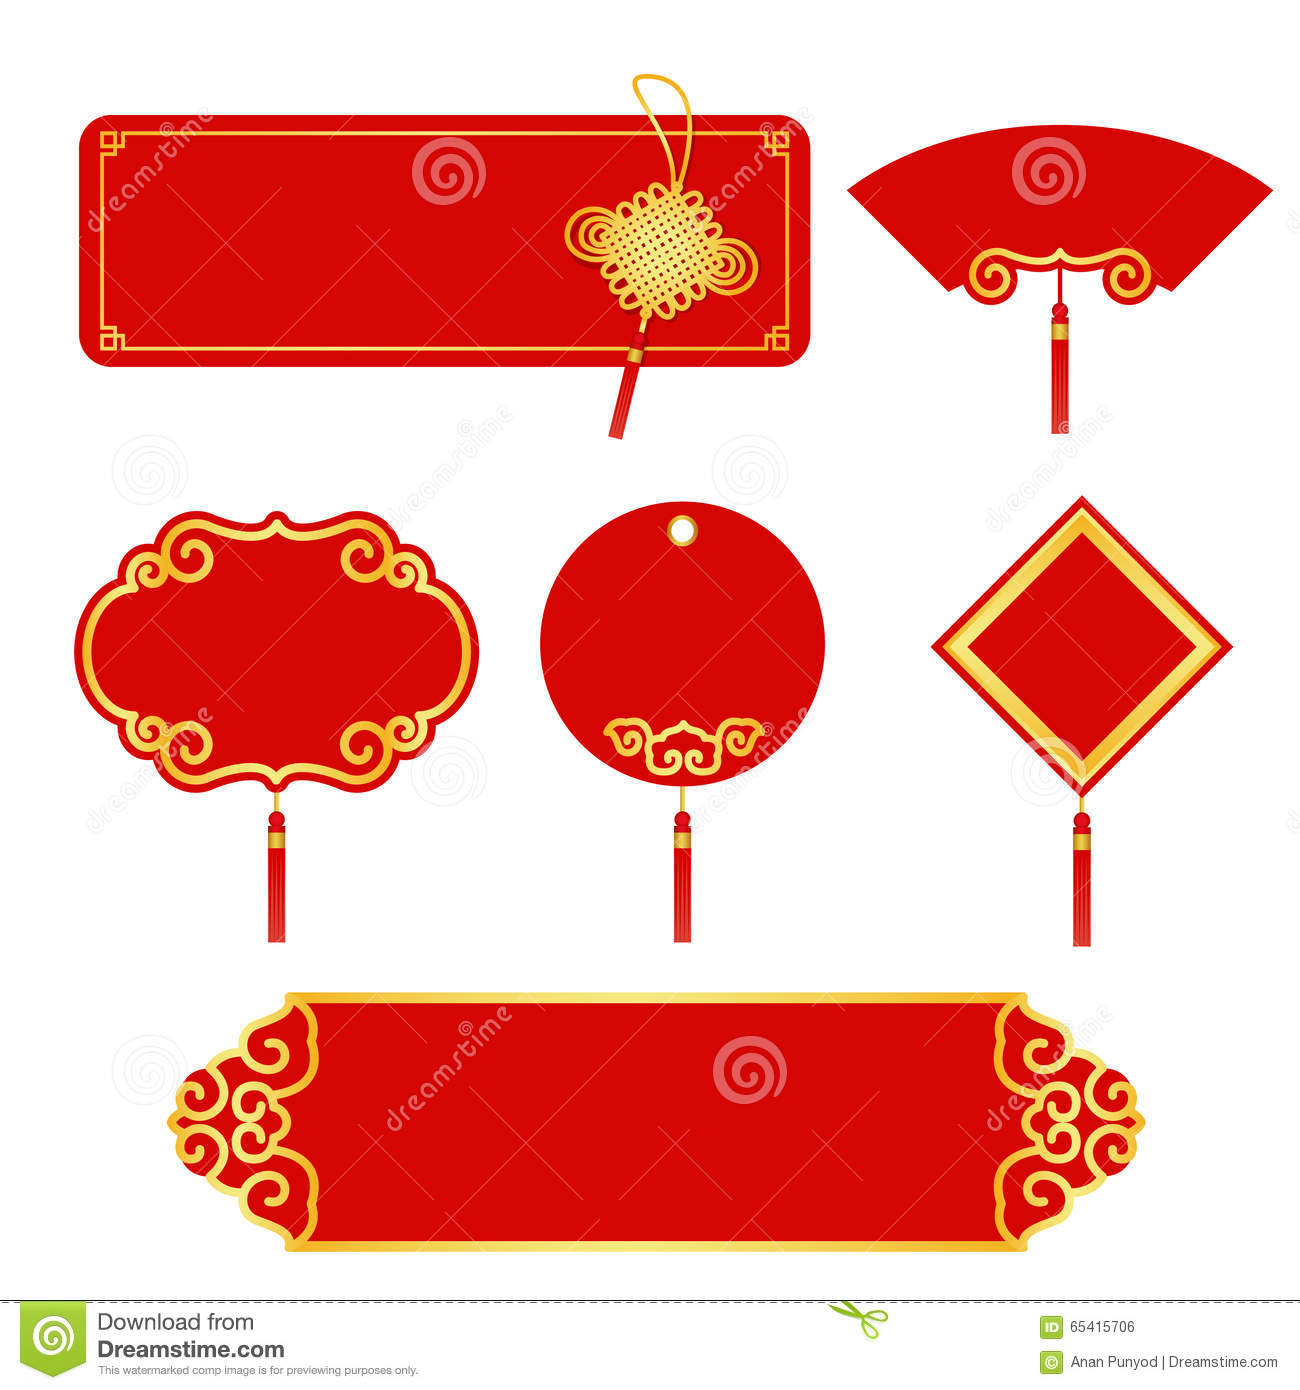 Symbols In Chinese Wedding Food